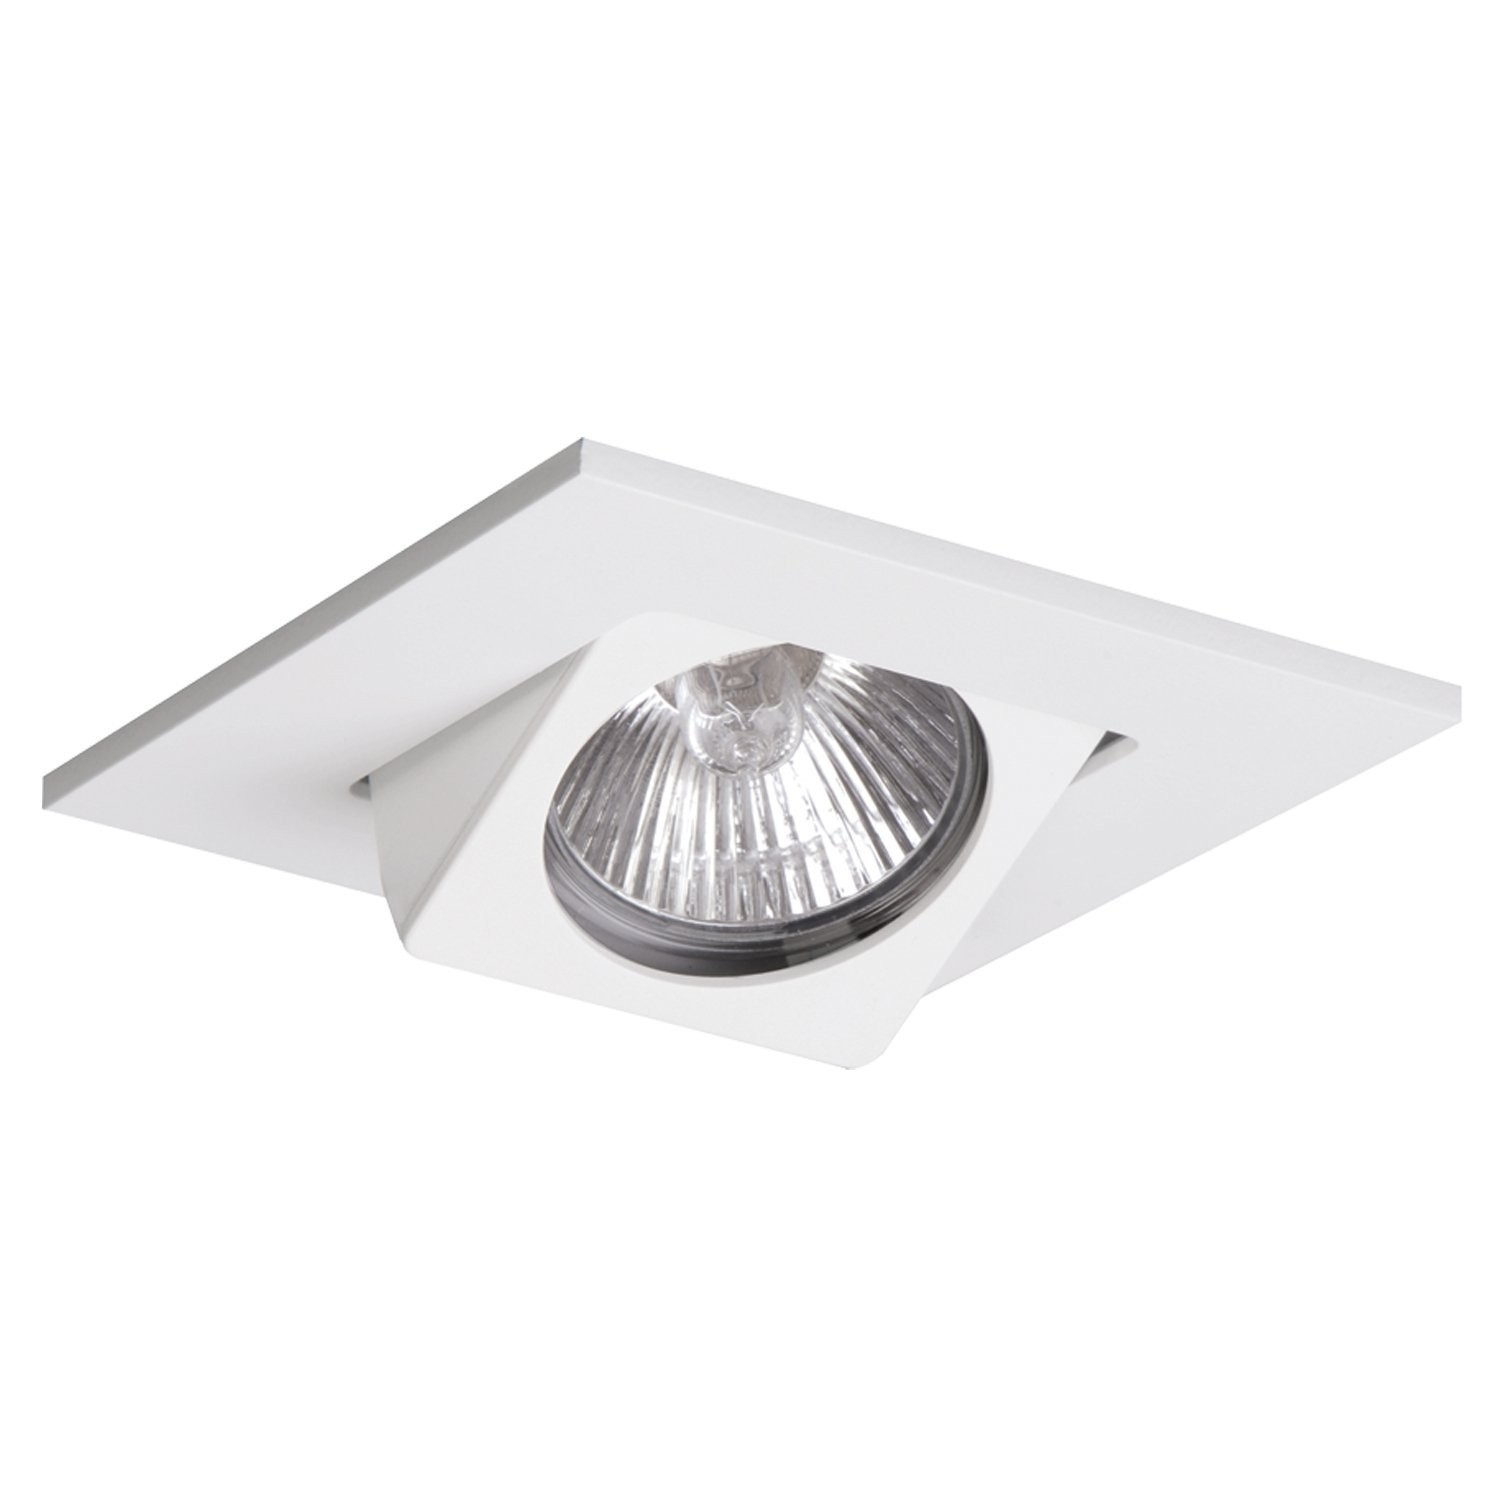 Recessed Lighting 3013WH.jpg